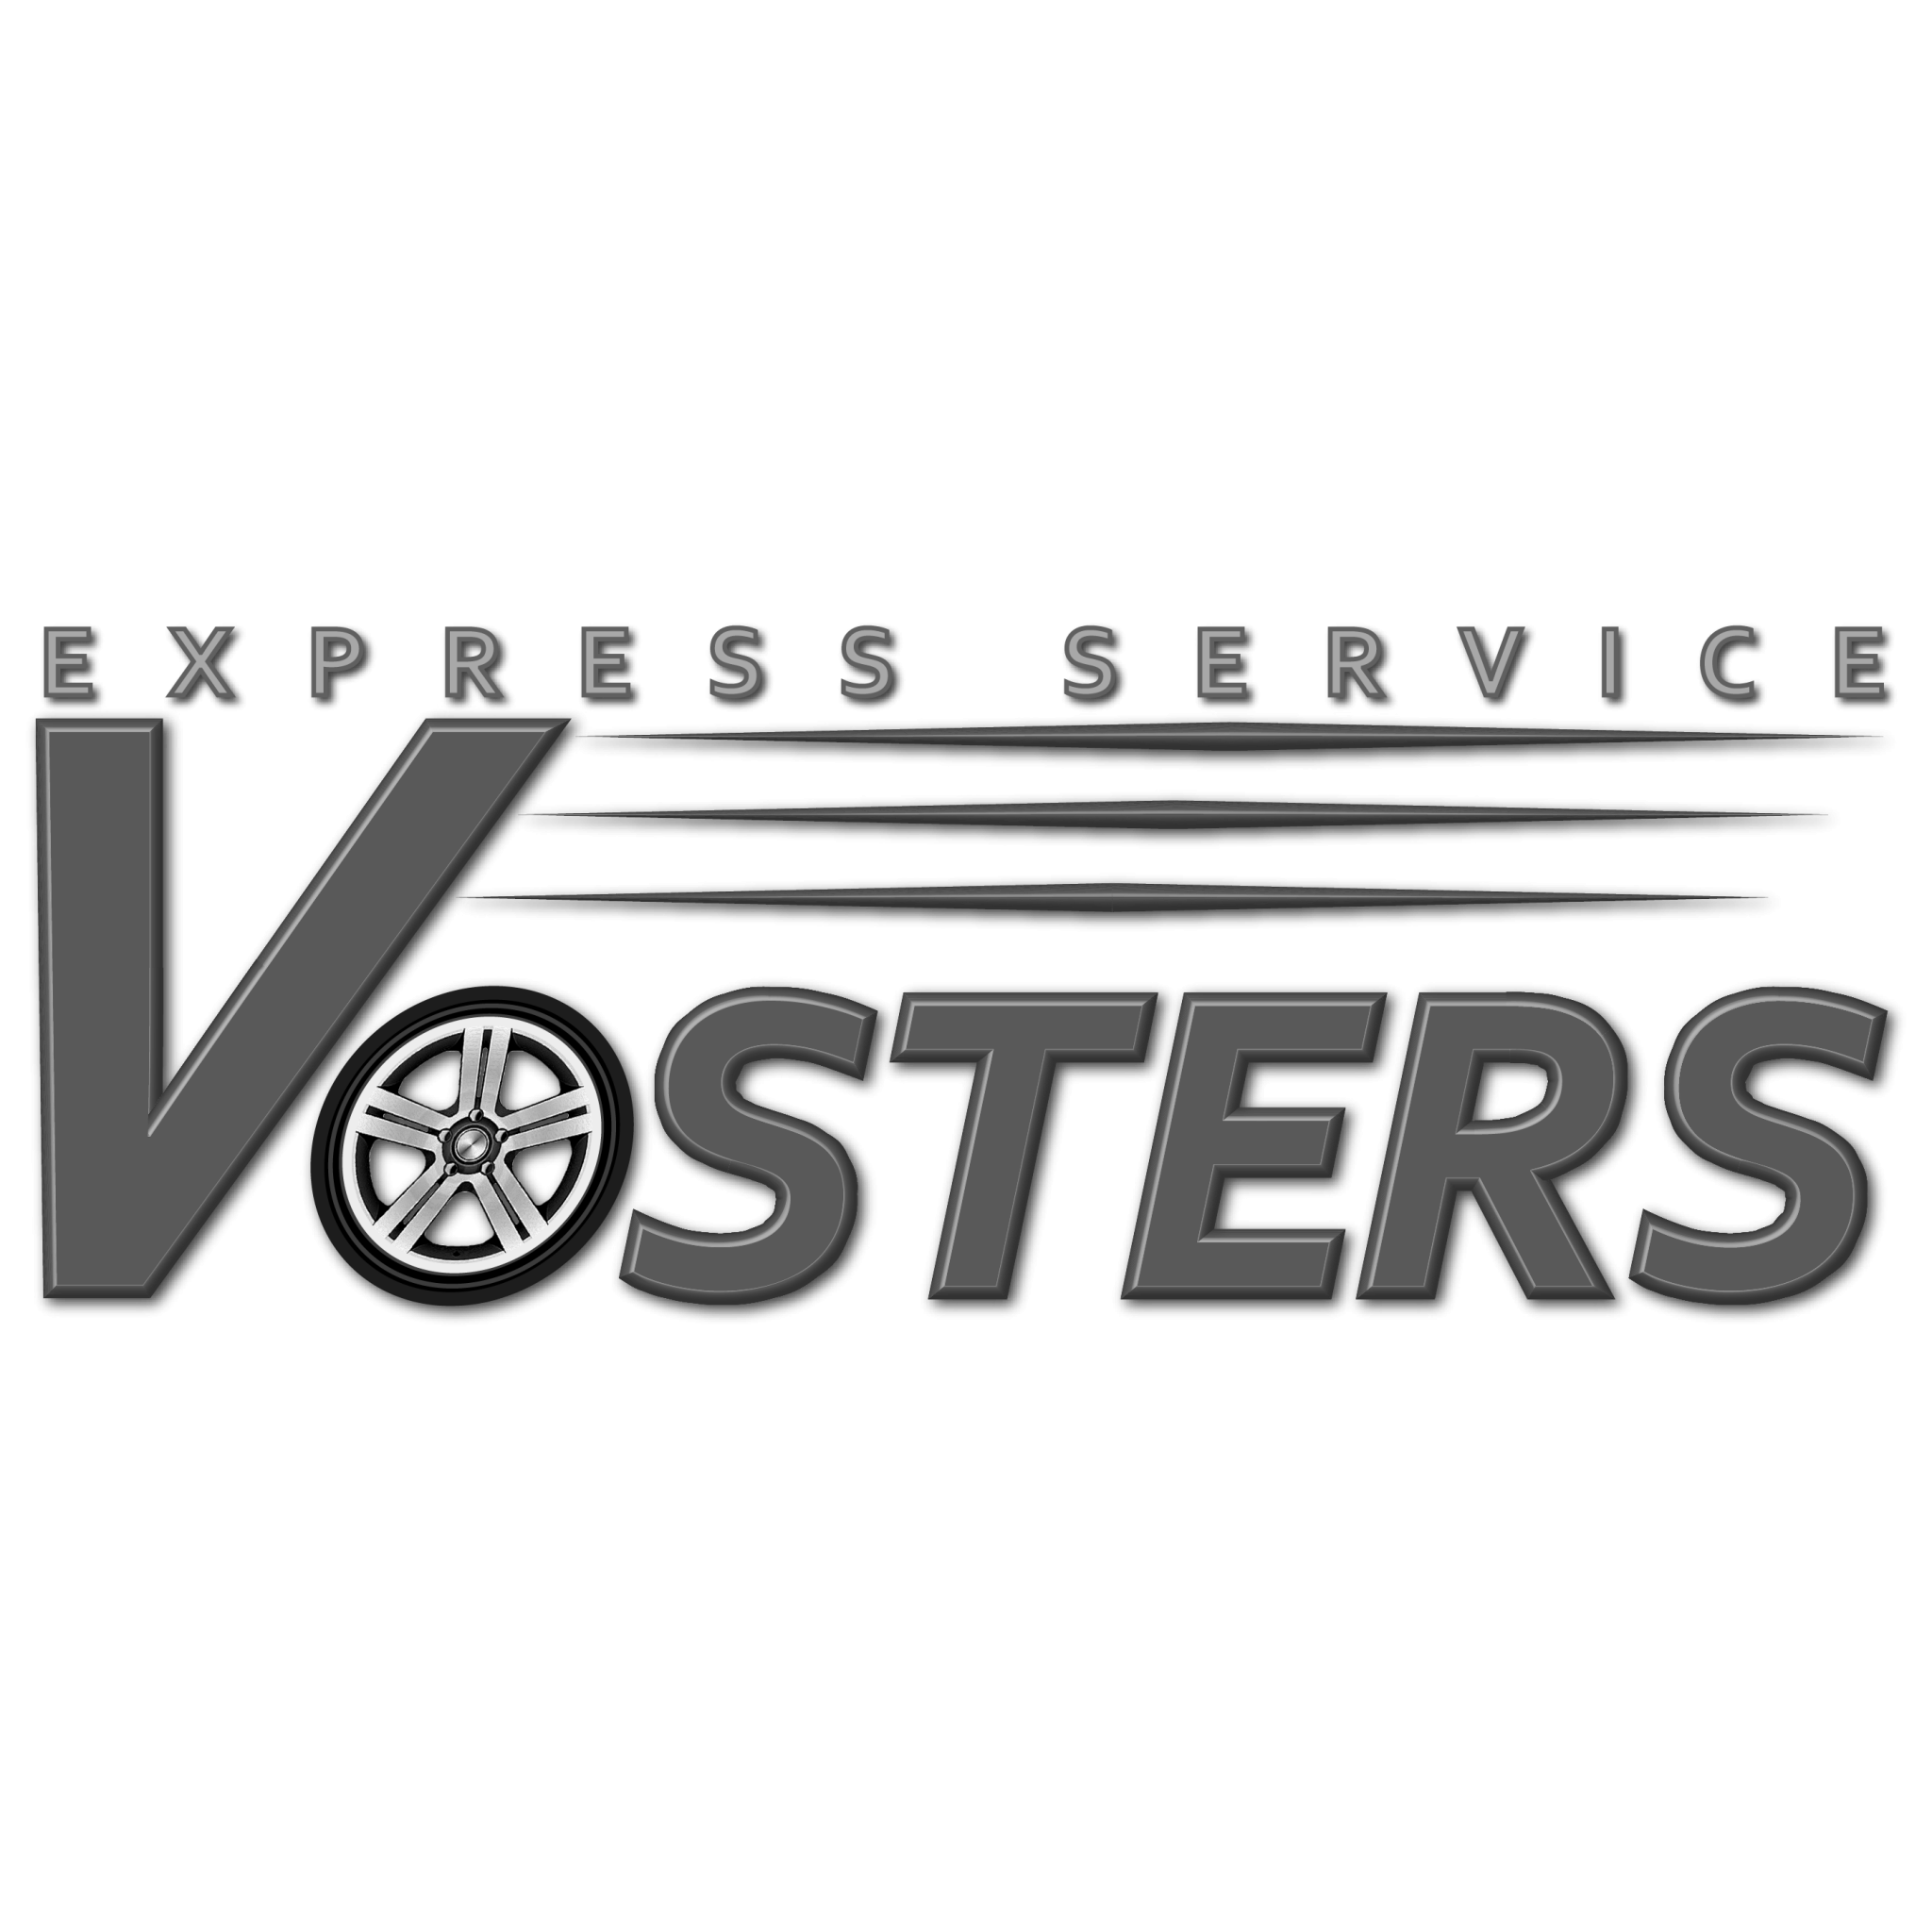 Vosters